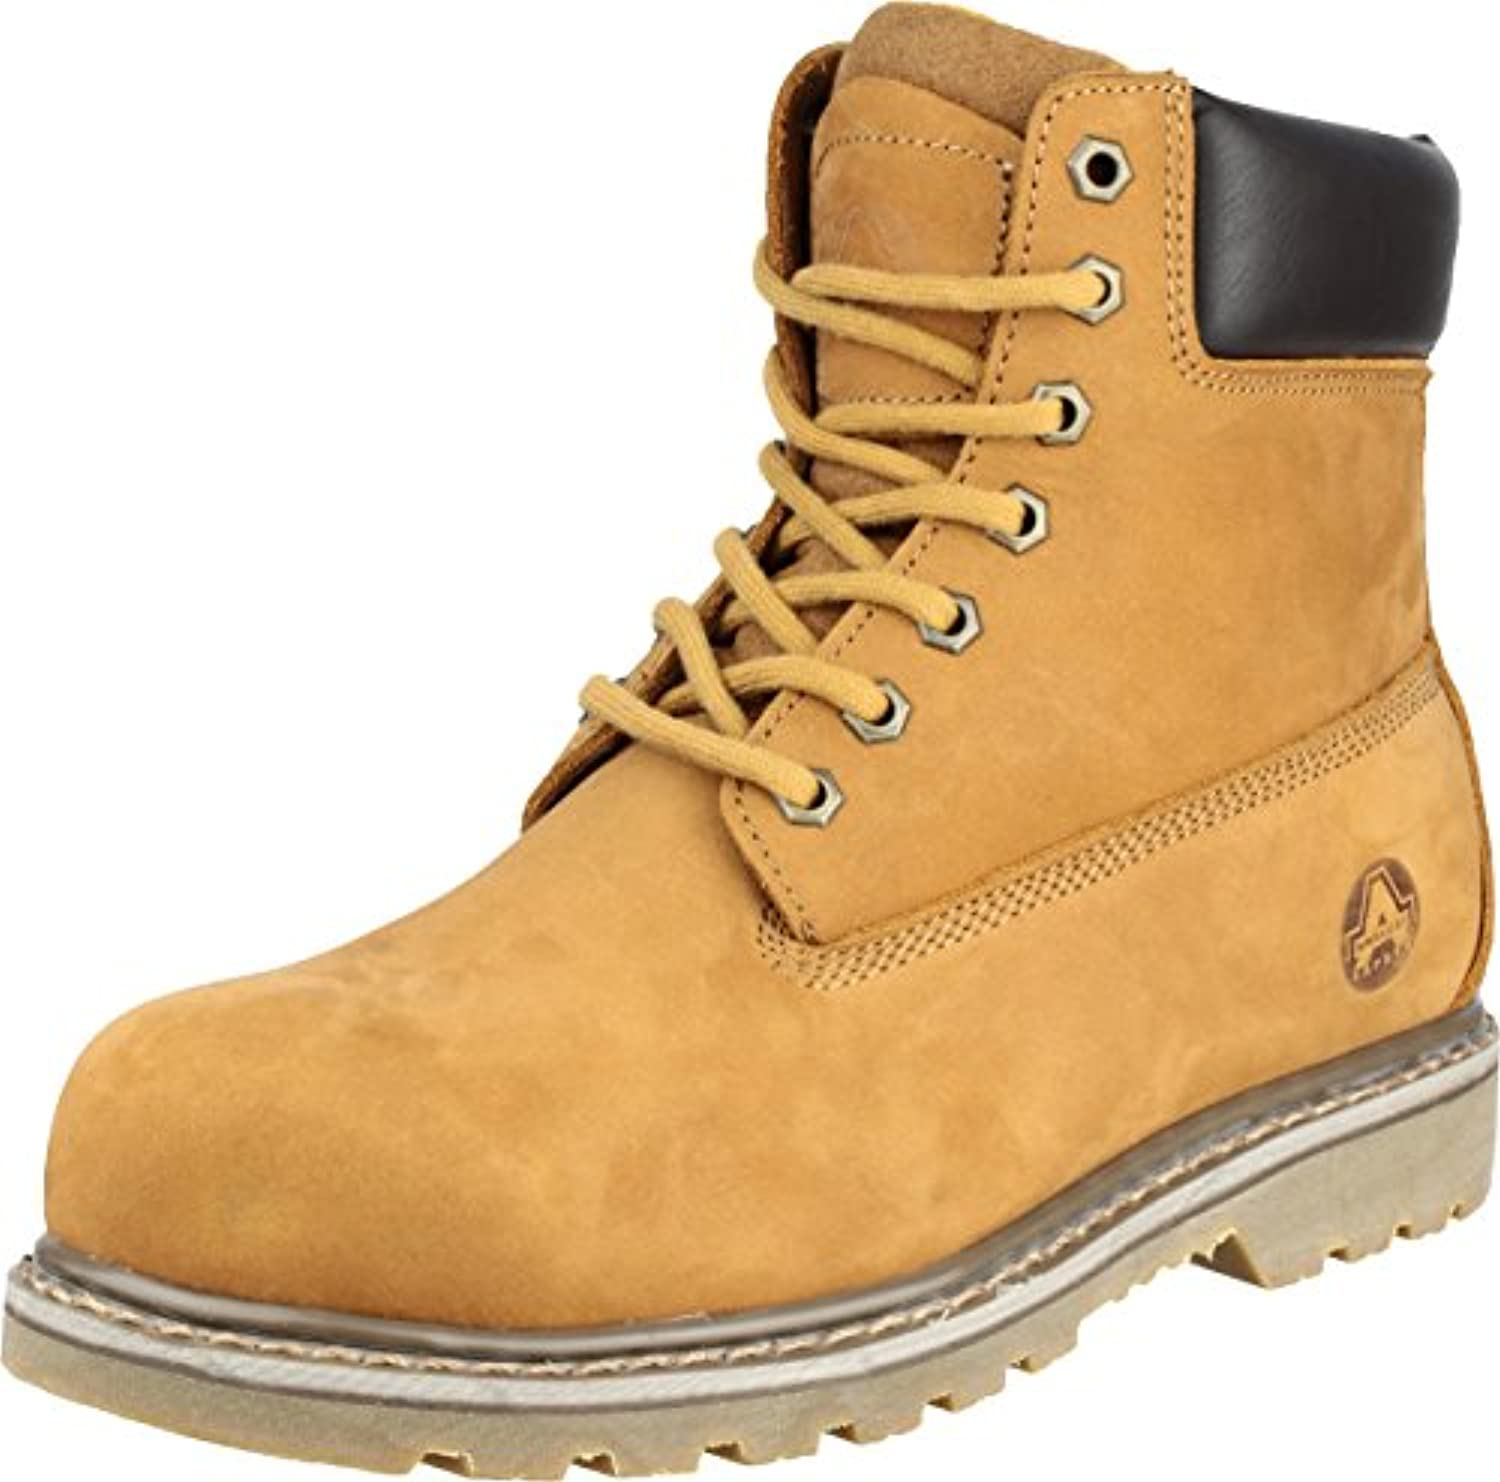 AMBFS169TB 10   FS169 Safety Boot Unisex   Tobacco   10   44 EU / 10 UK